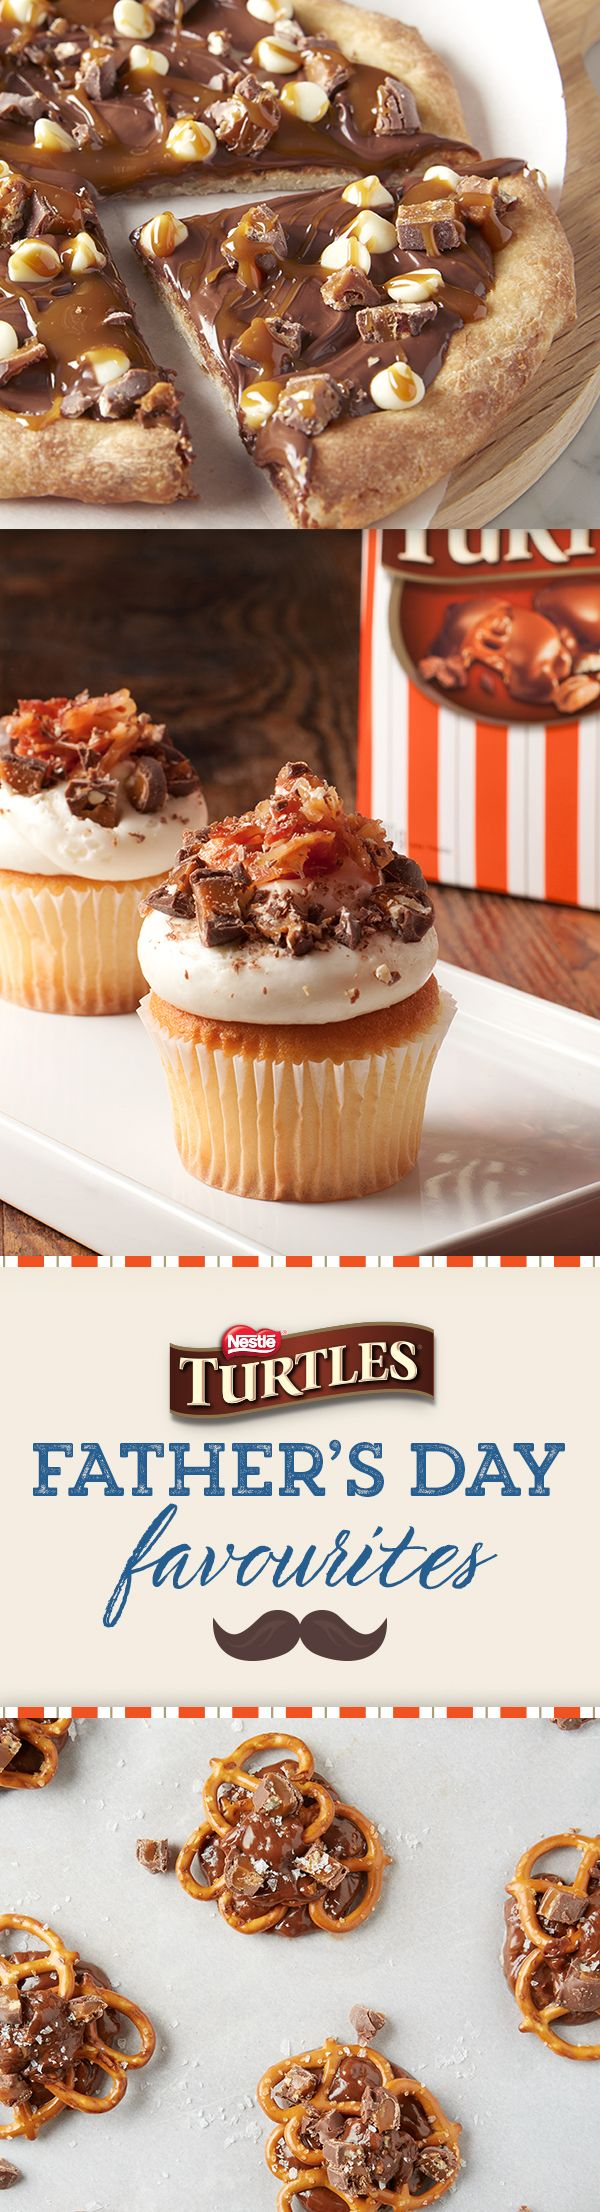 Everyone knows the best Father's Day gifts are made with love! Make Dad's day with these heartwarming TURTLES recipes.